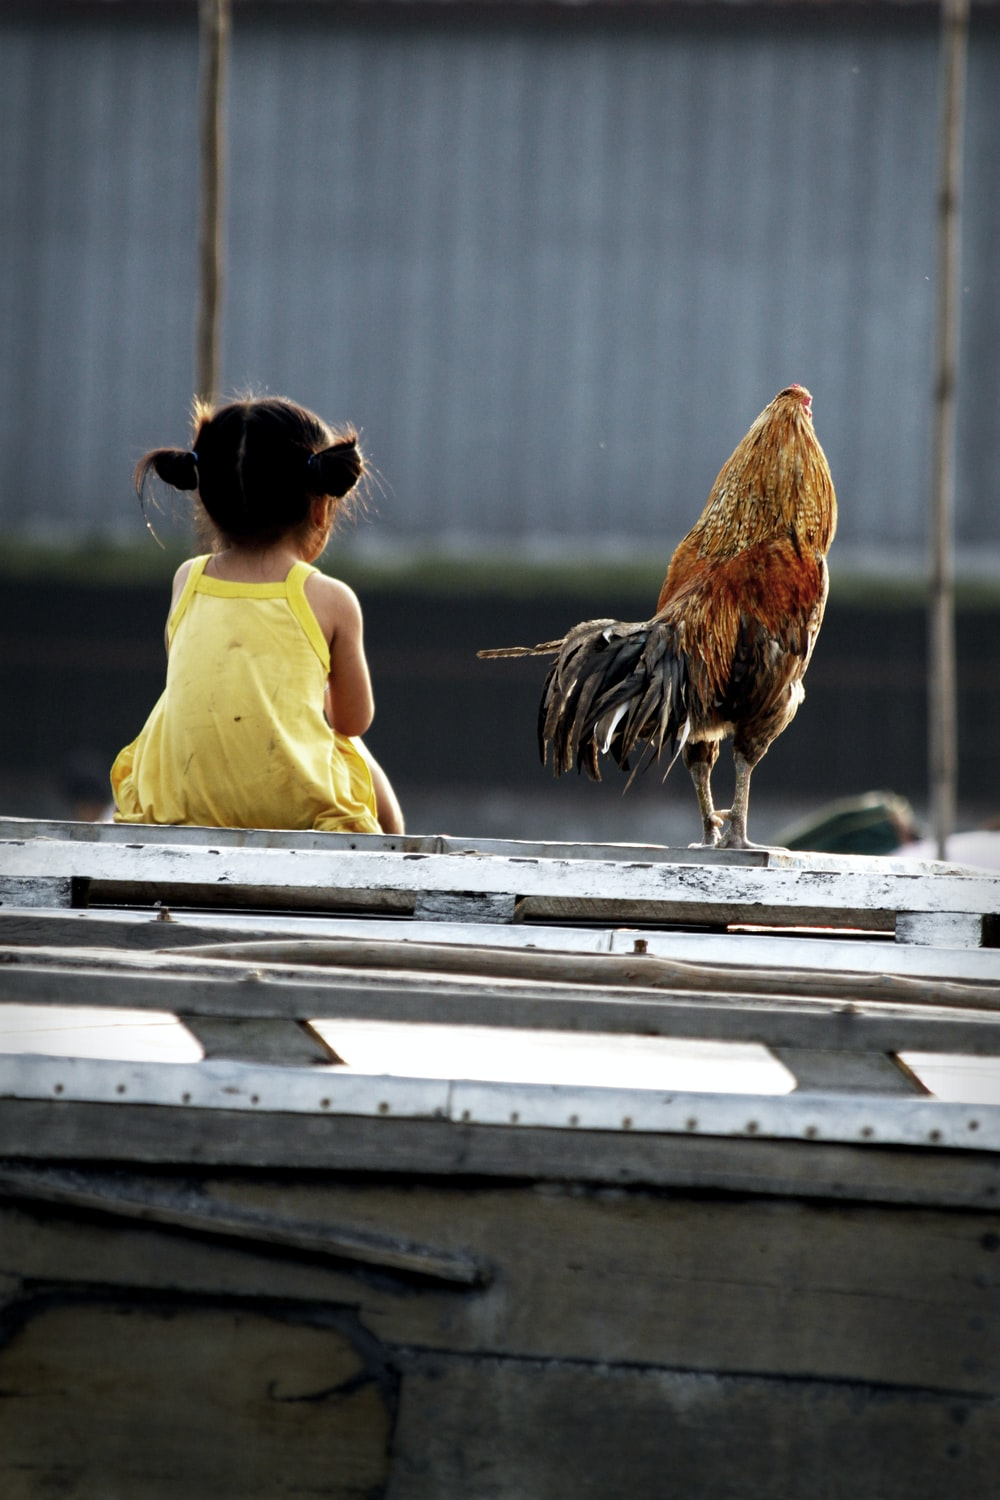 brown and black rooster beside child